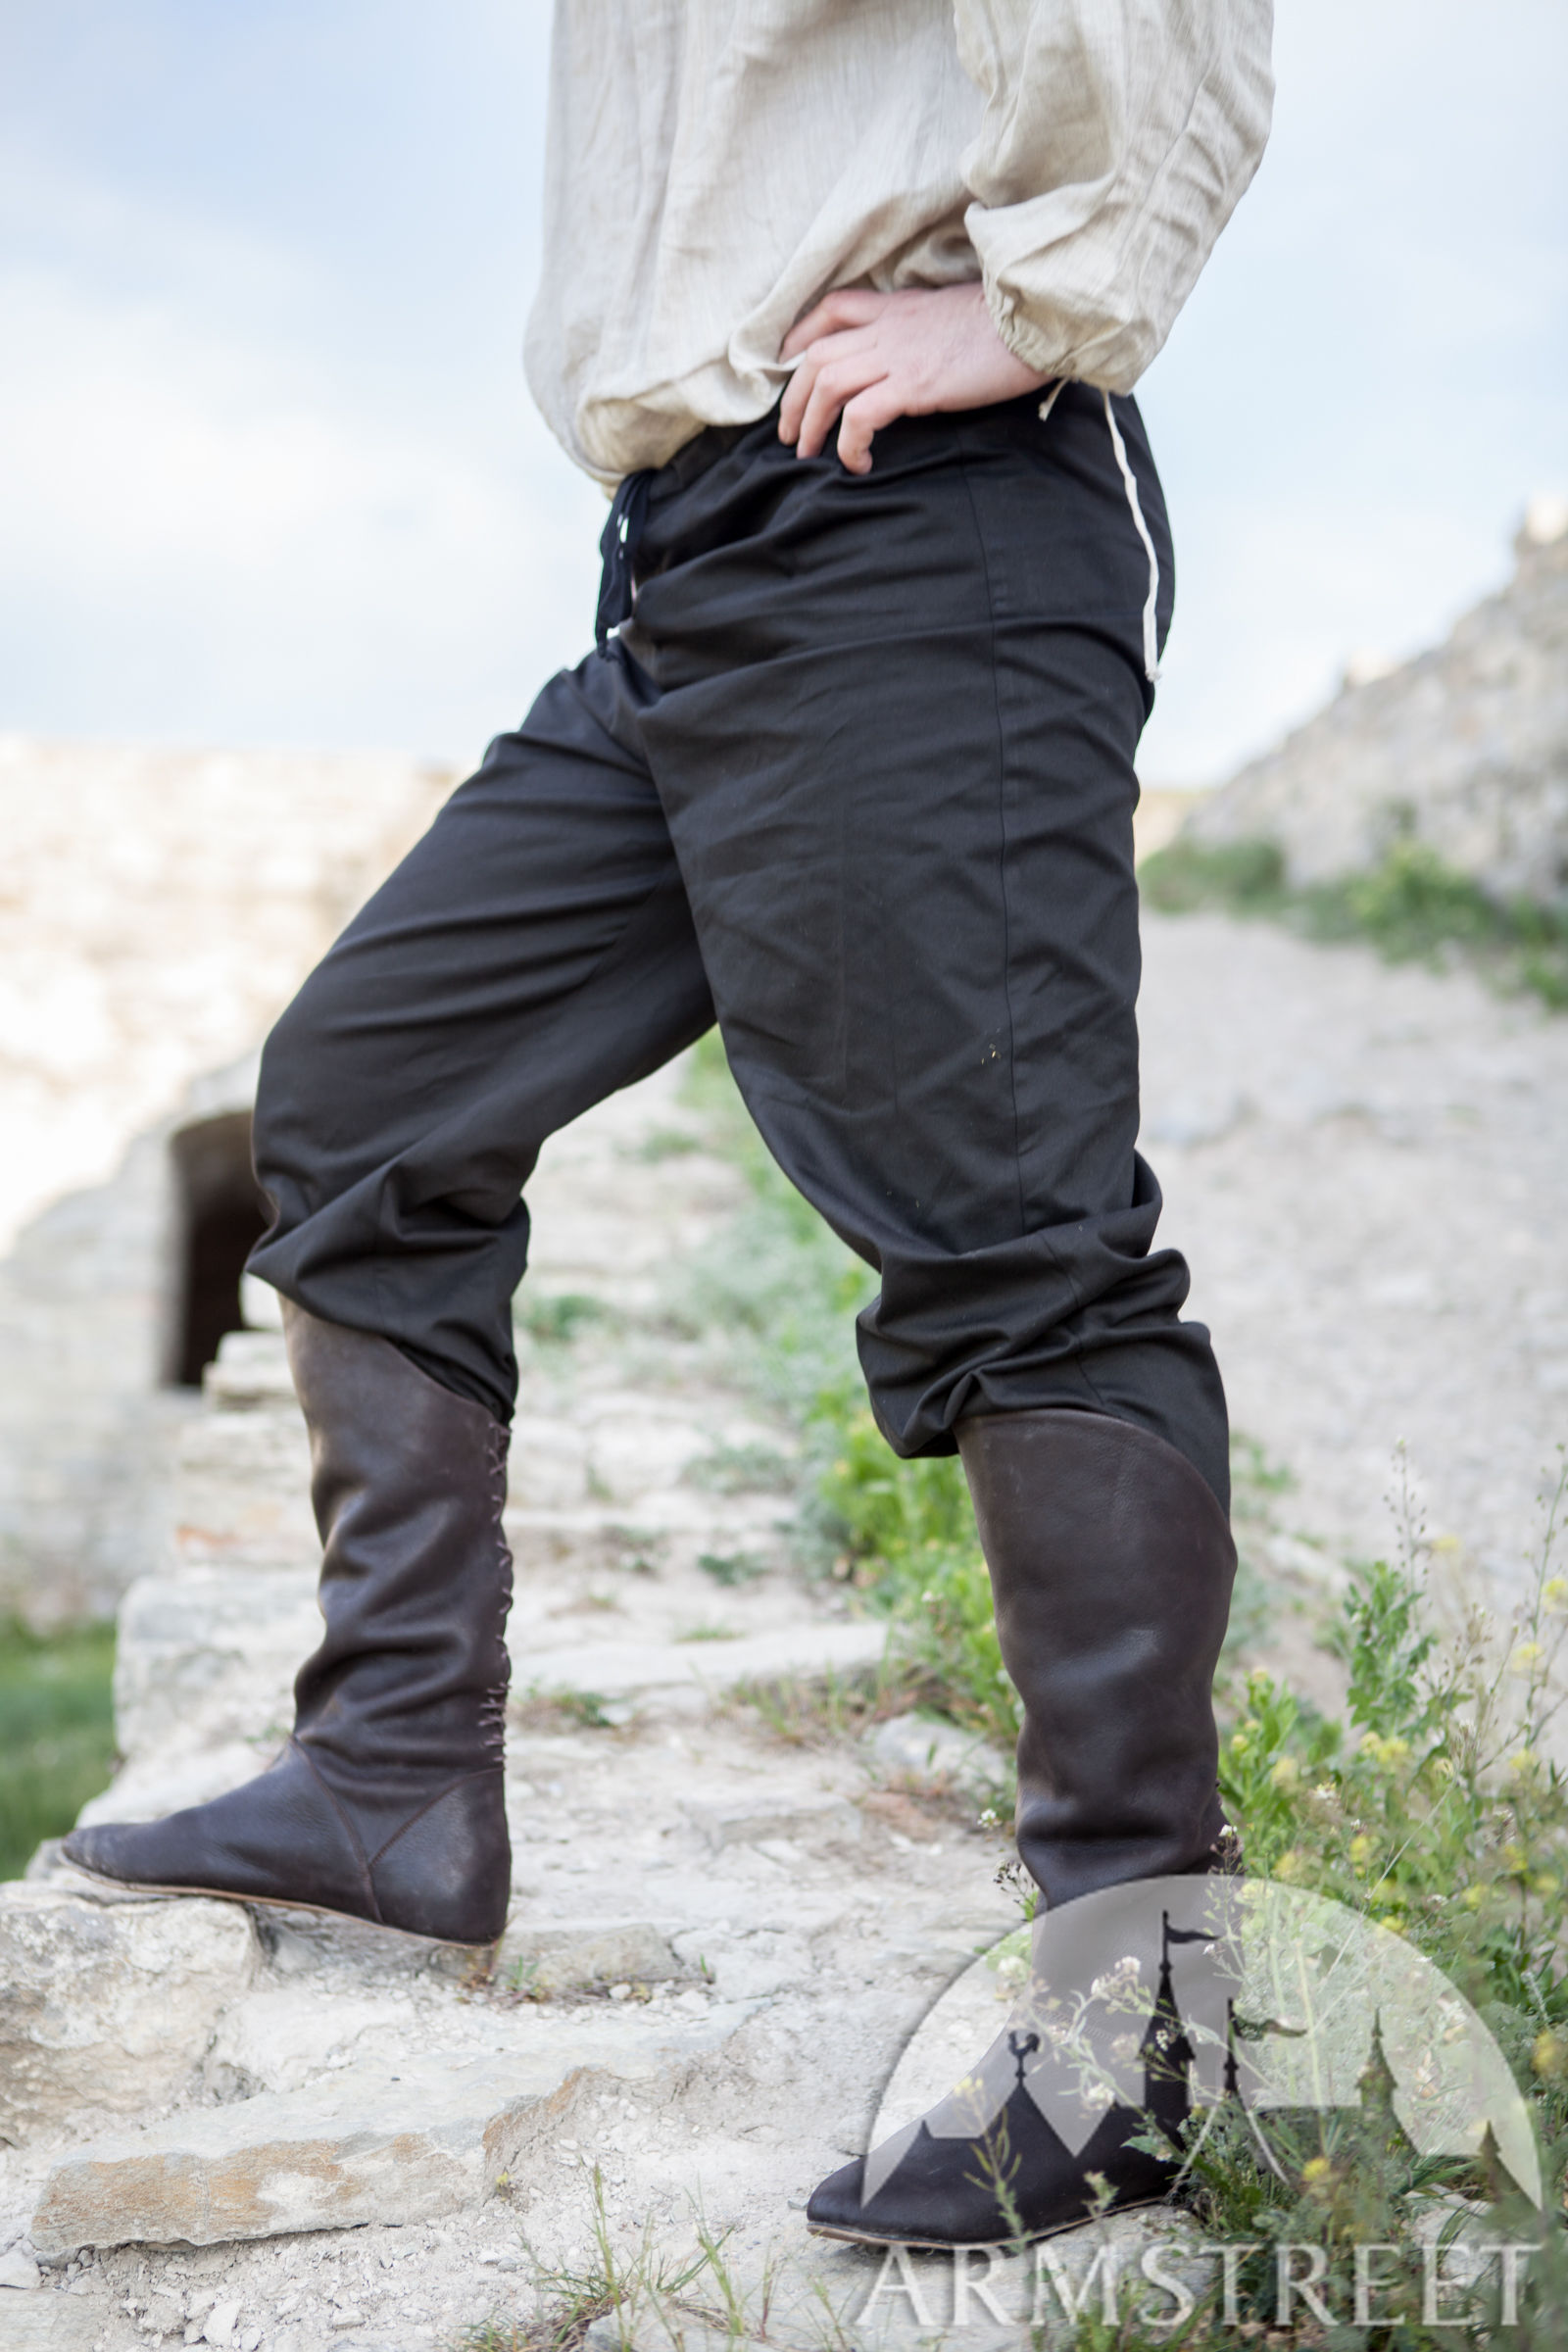 black cotton medieval pants for sale available in dark